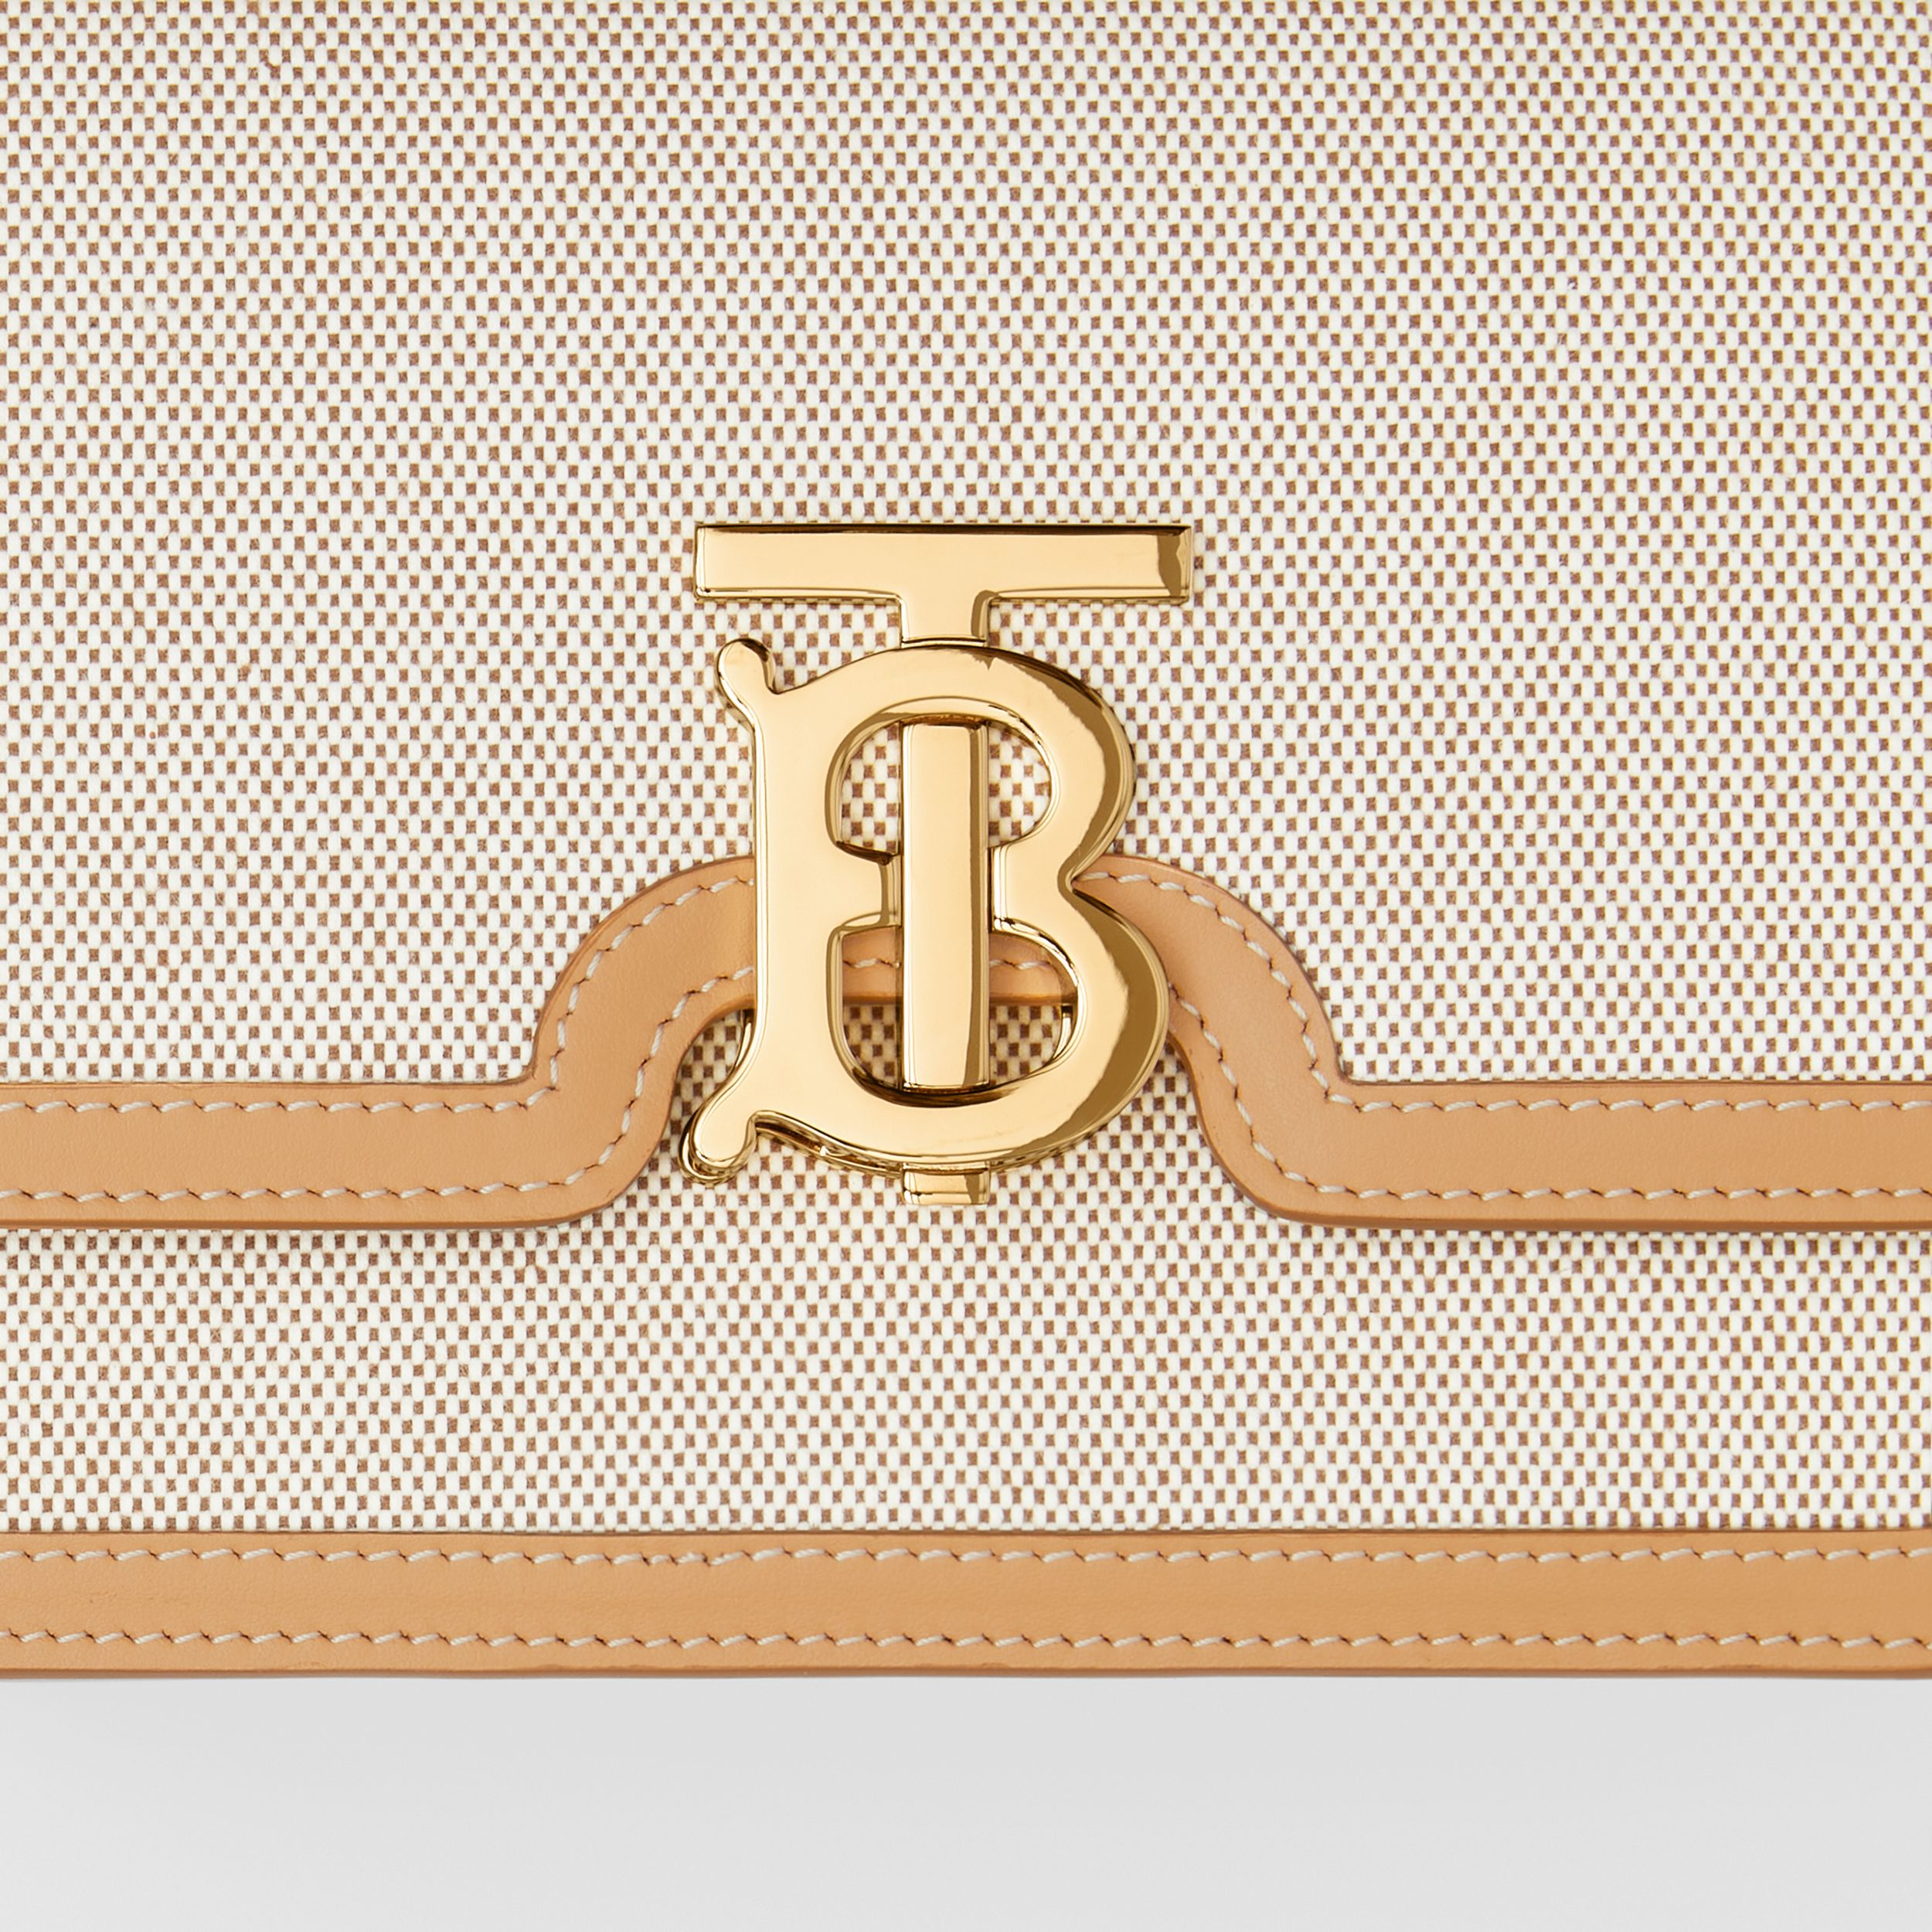 Small Two-tone Canvas and Leather TB Bag in Soft Fawn/warm Sand - Women | Burberry Singapore - 2